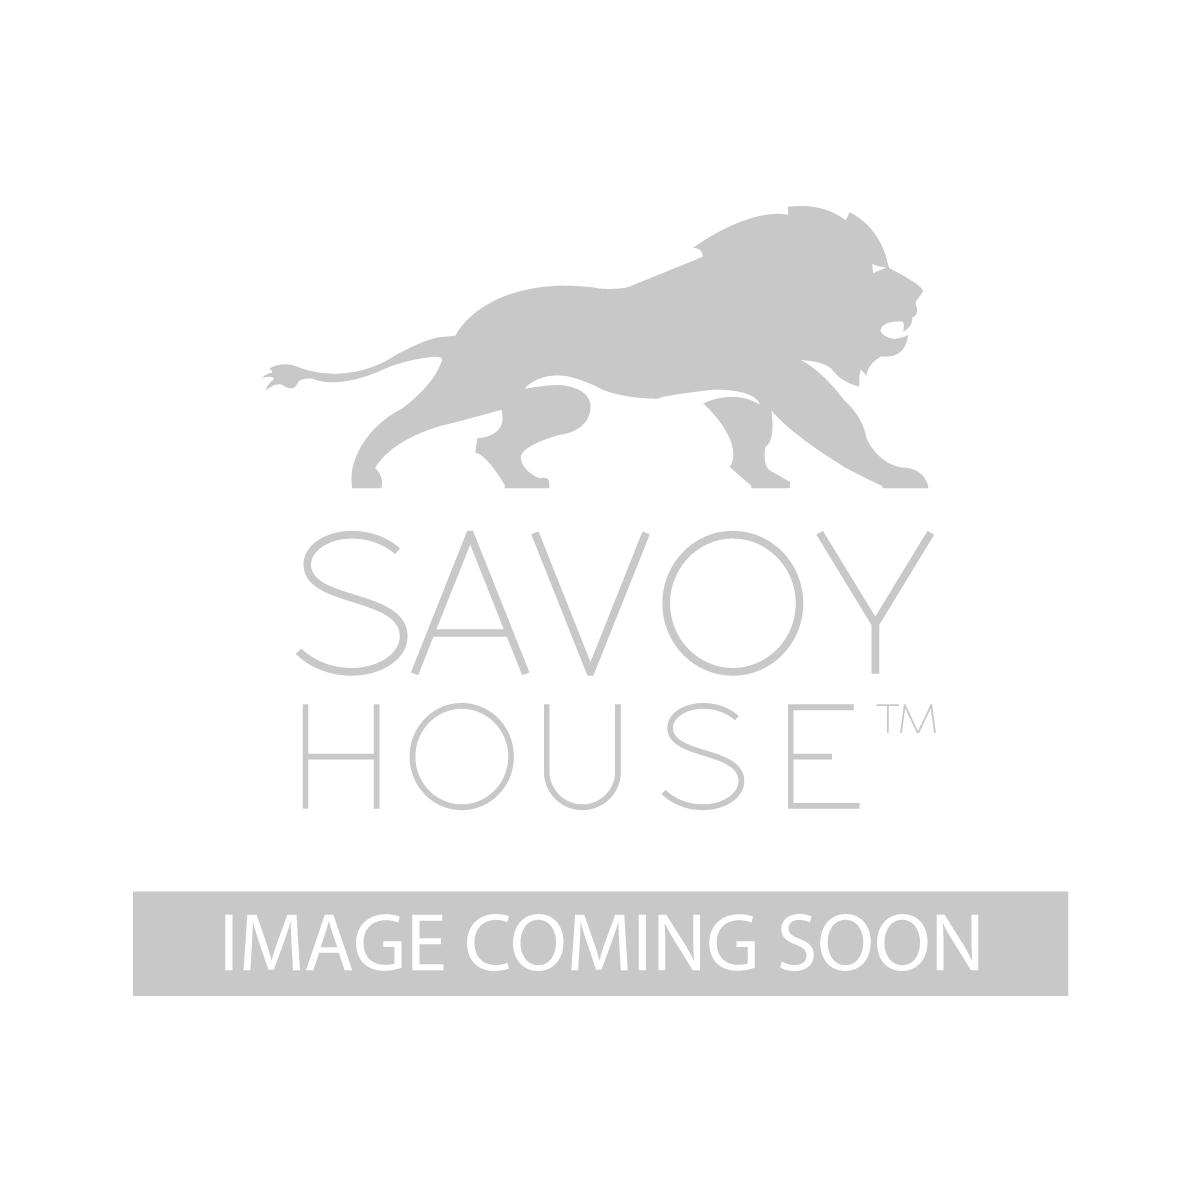 1 8030 6 64 blair 6 light chandelier by savoy house for Savoy house com